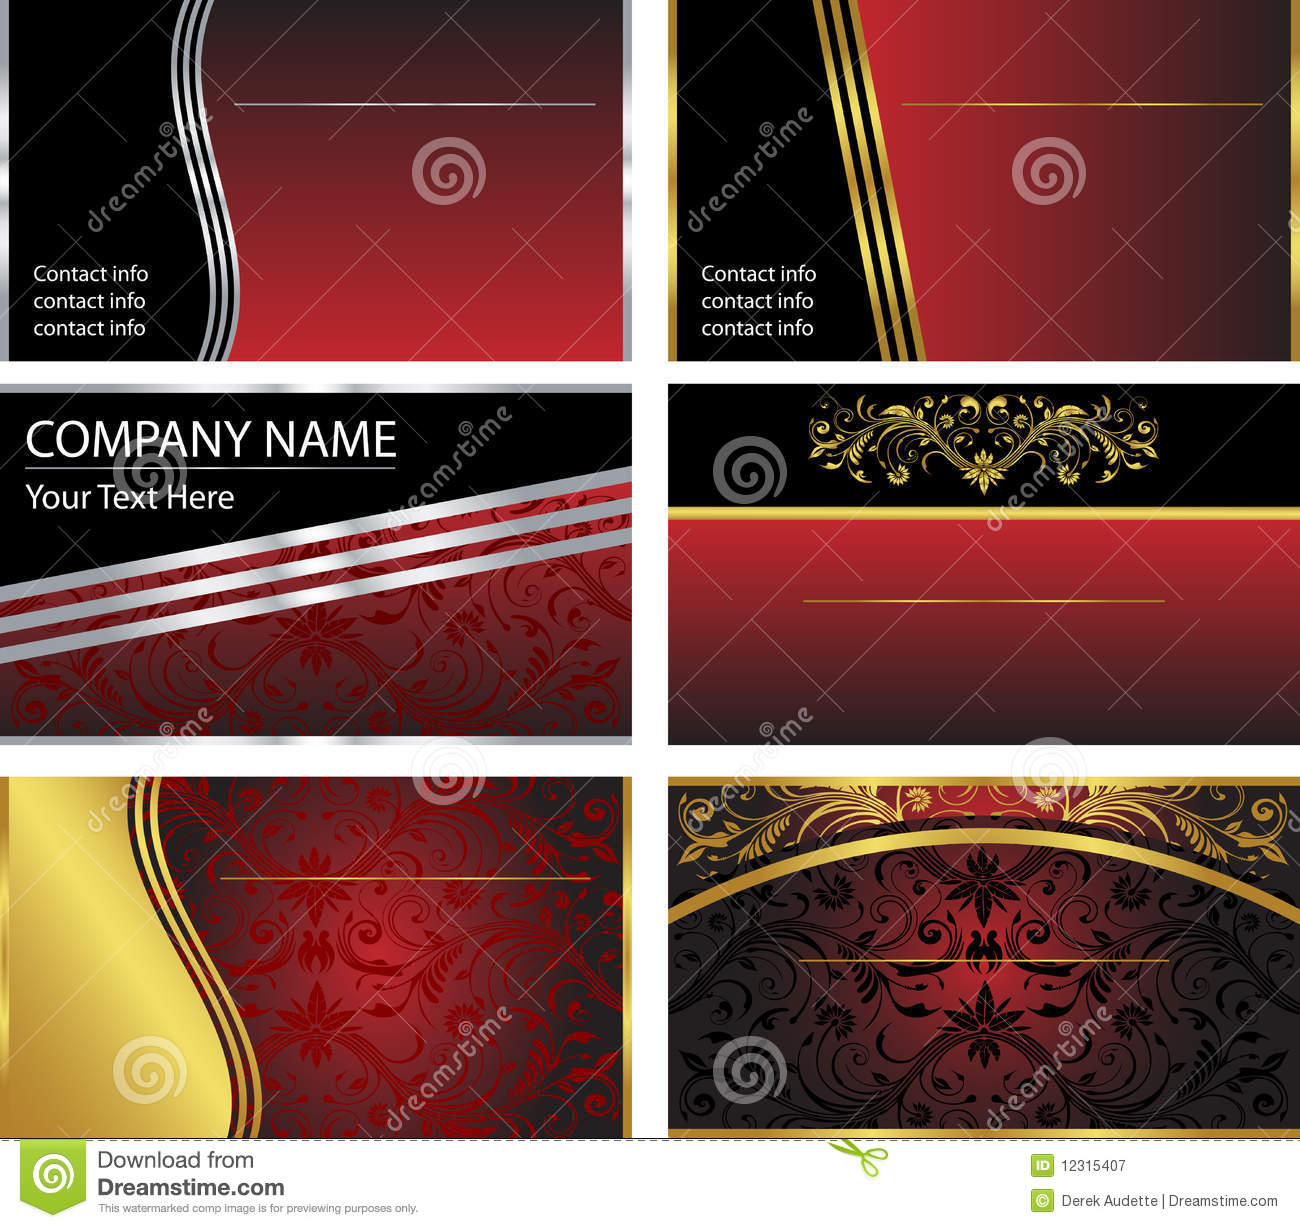 Six vector business card templates stock vector illustration of six vector business card templates flashek Gallery